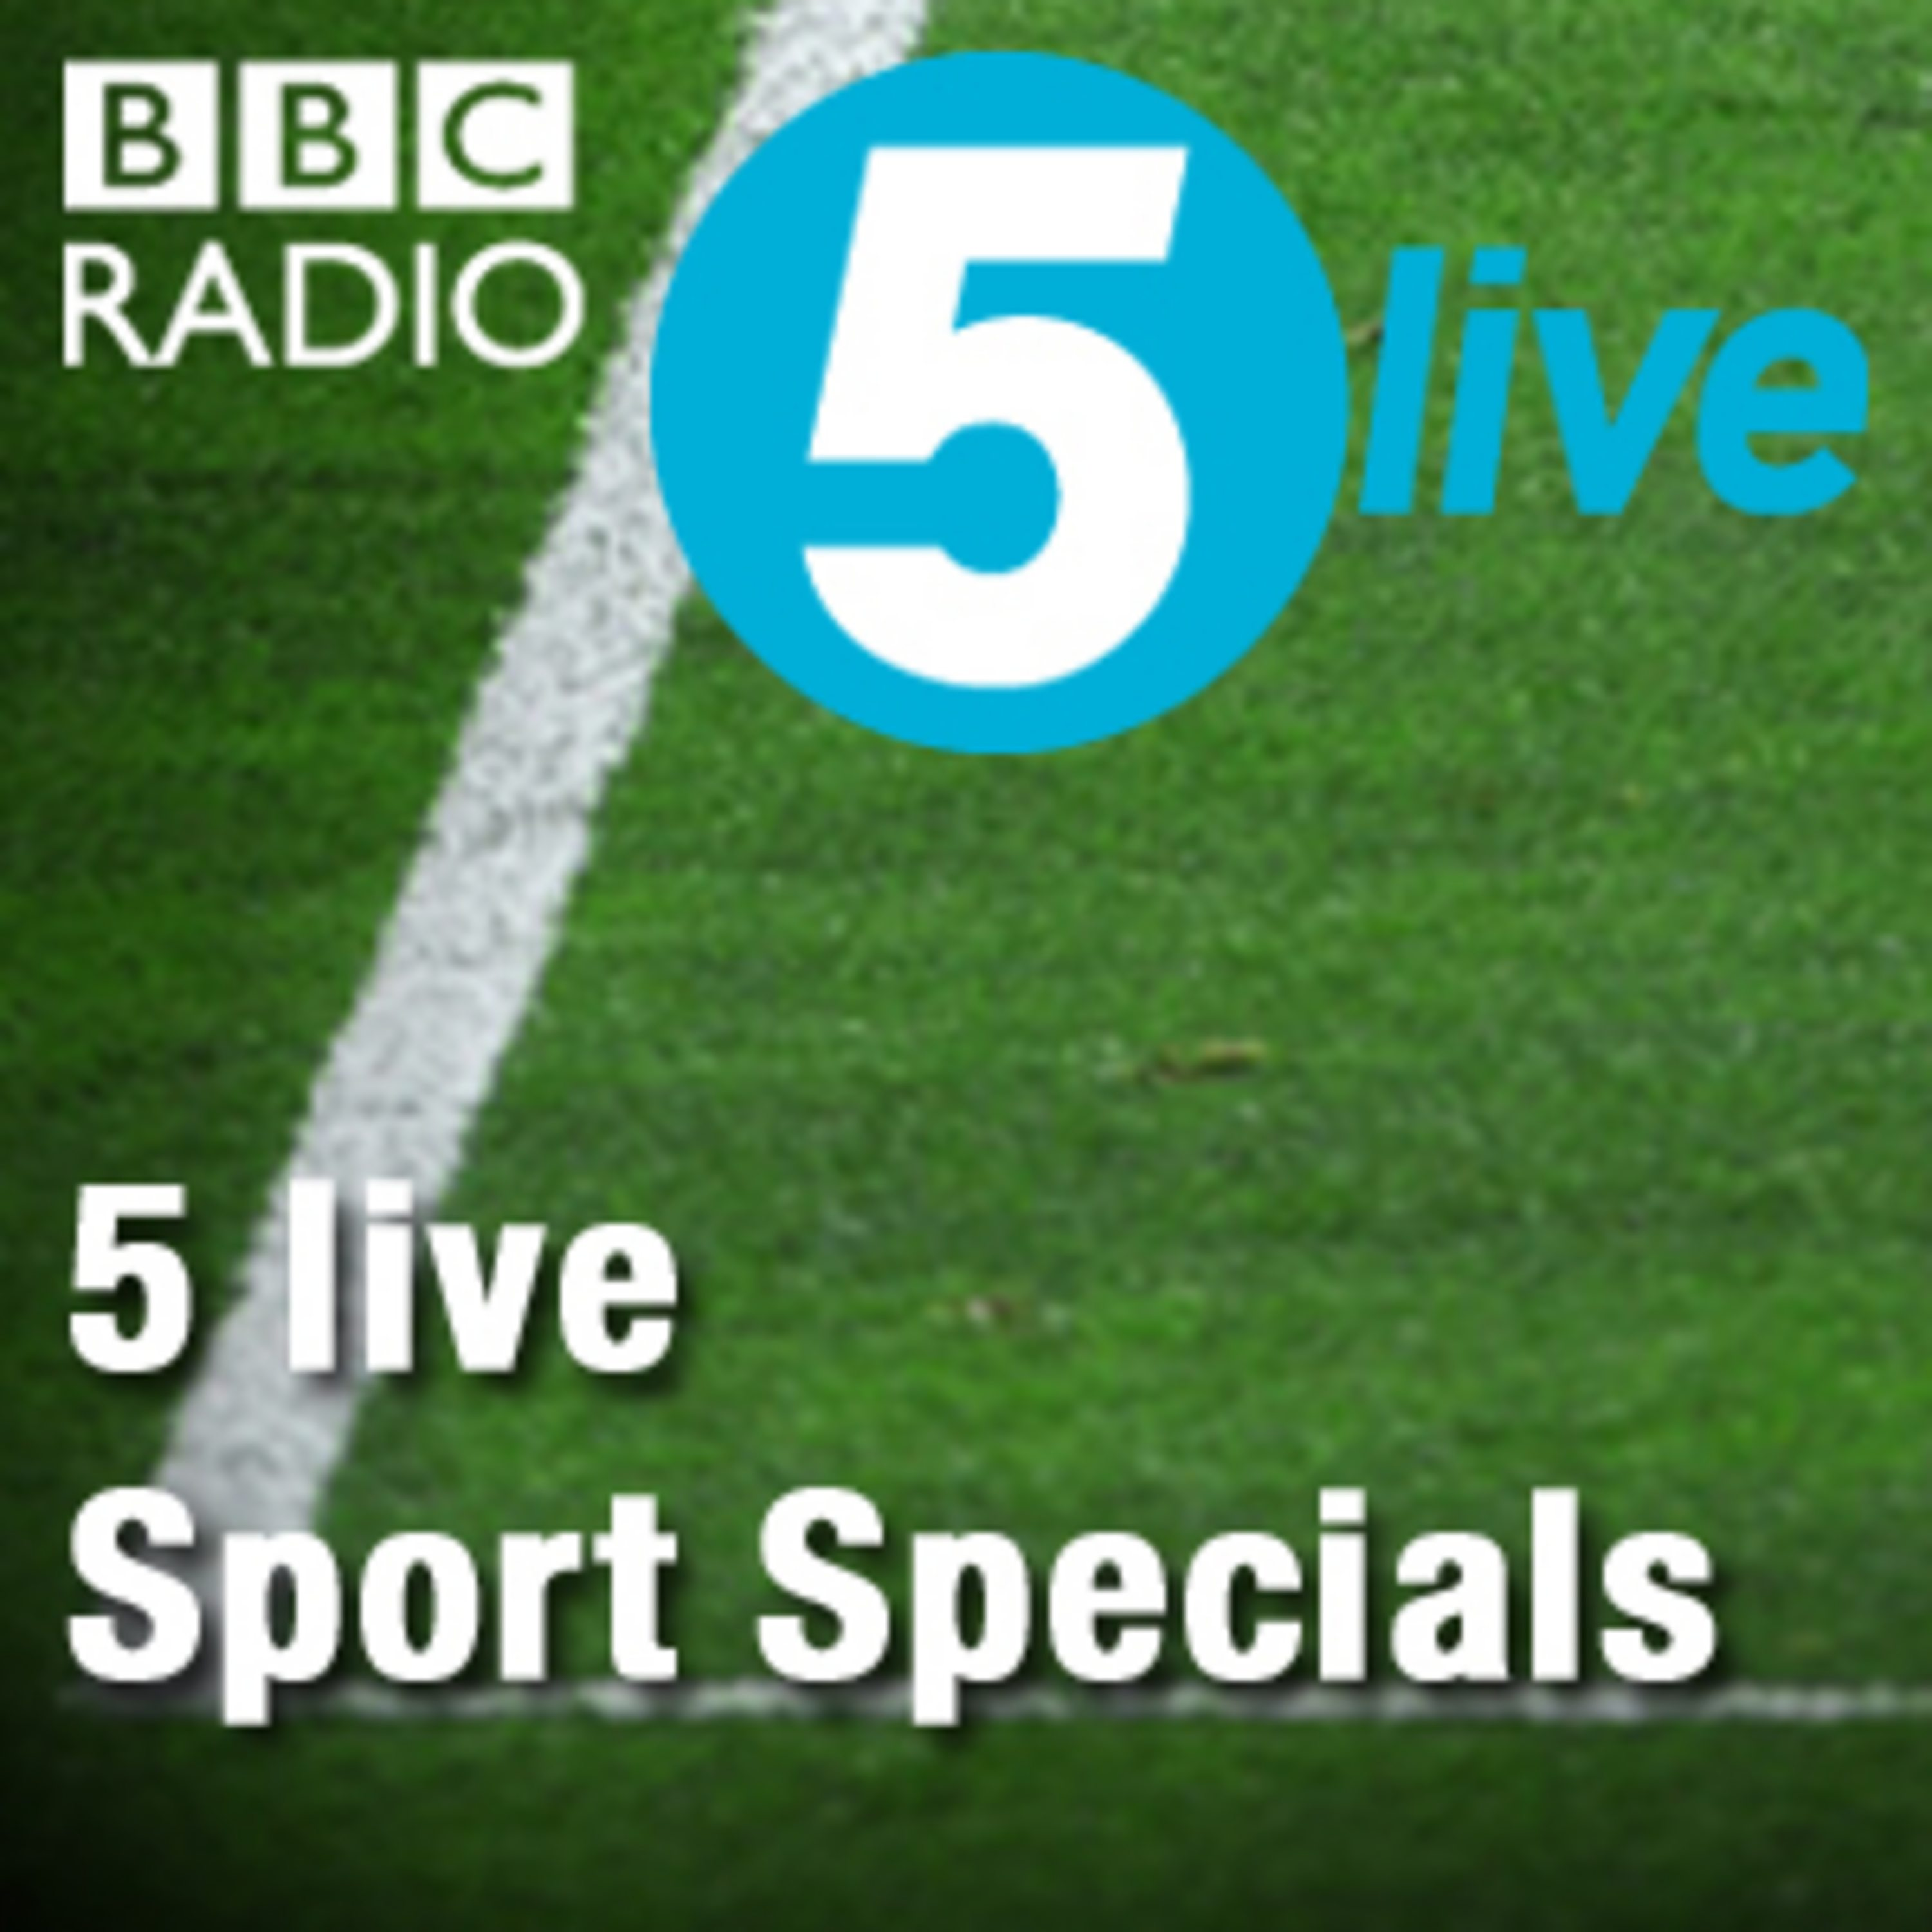 live sport specials listen via radio on demand